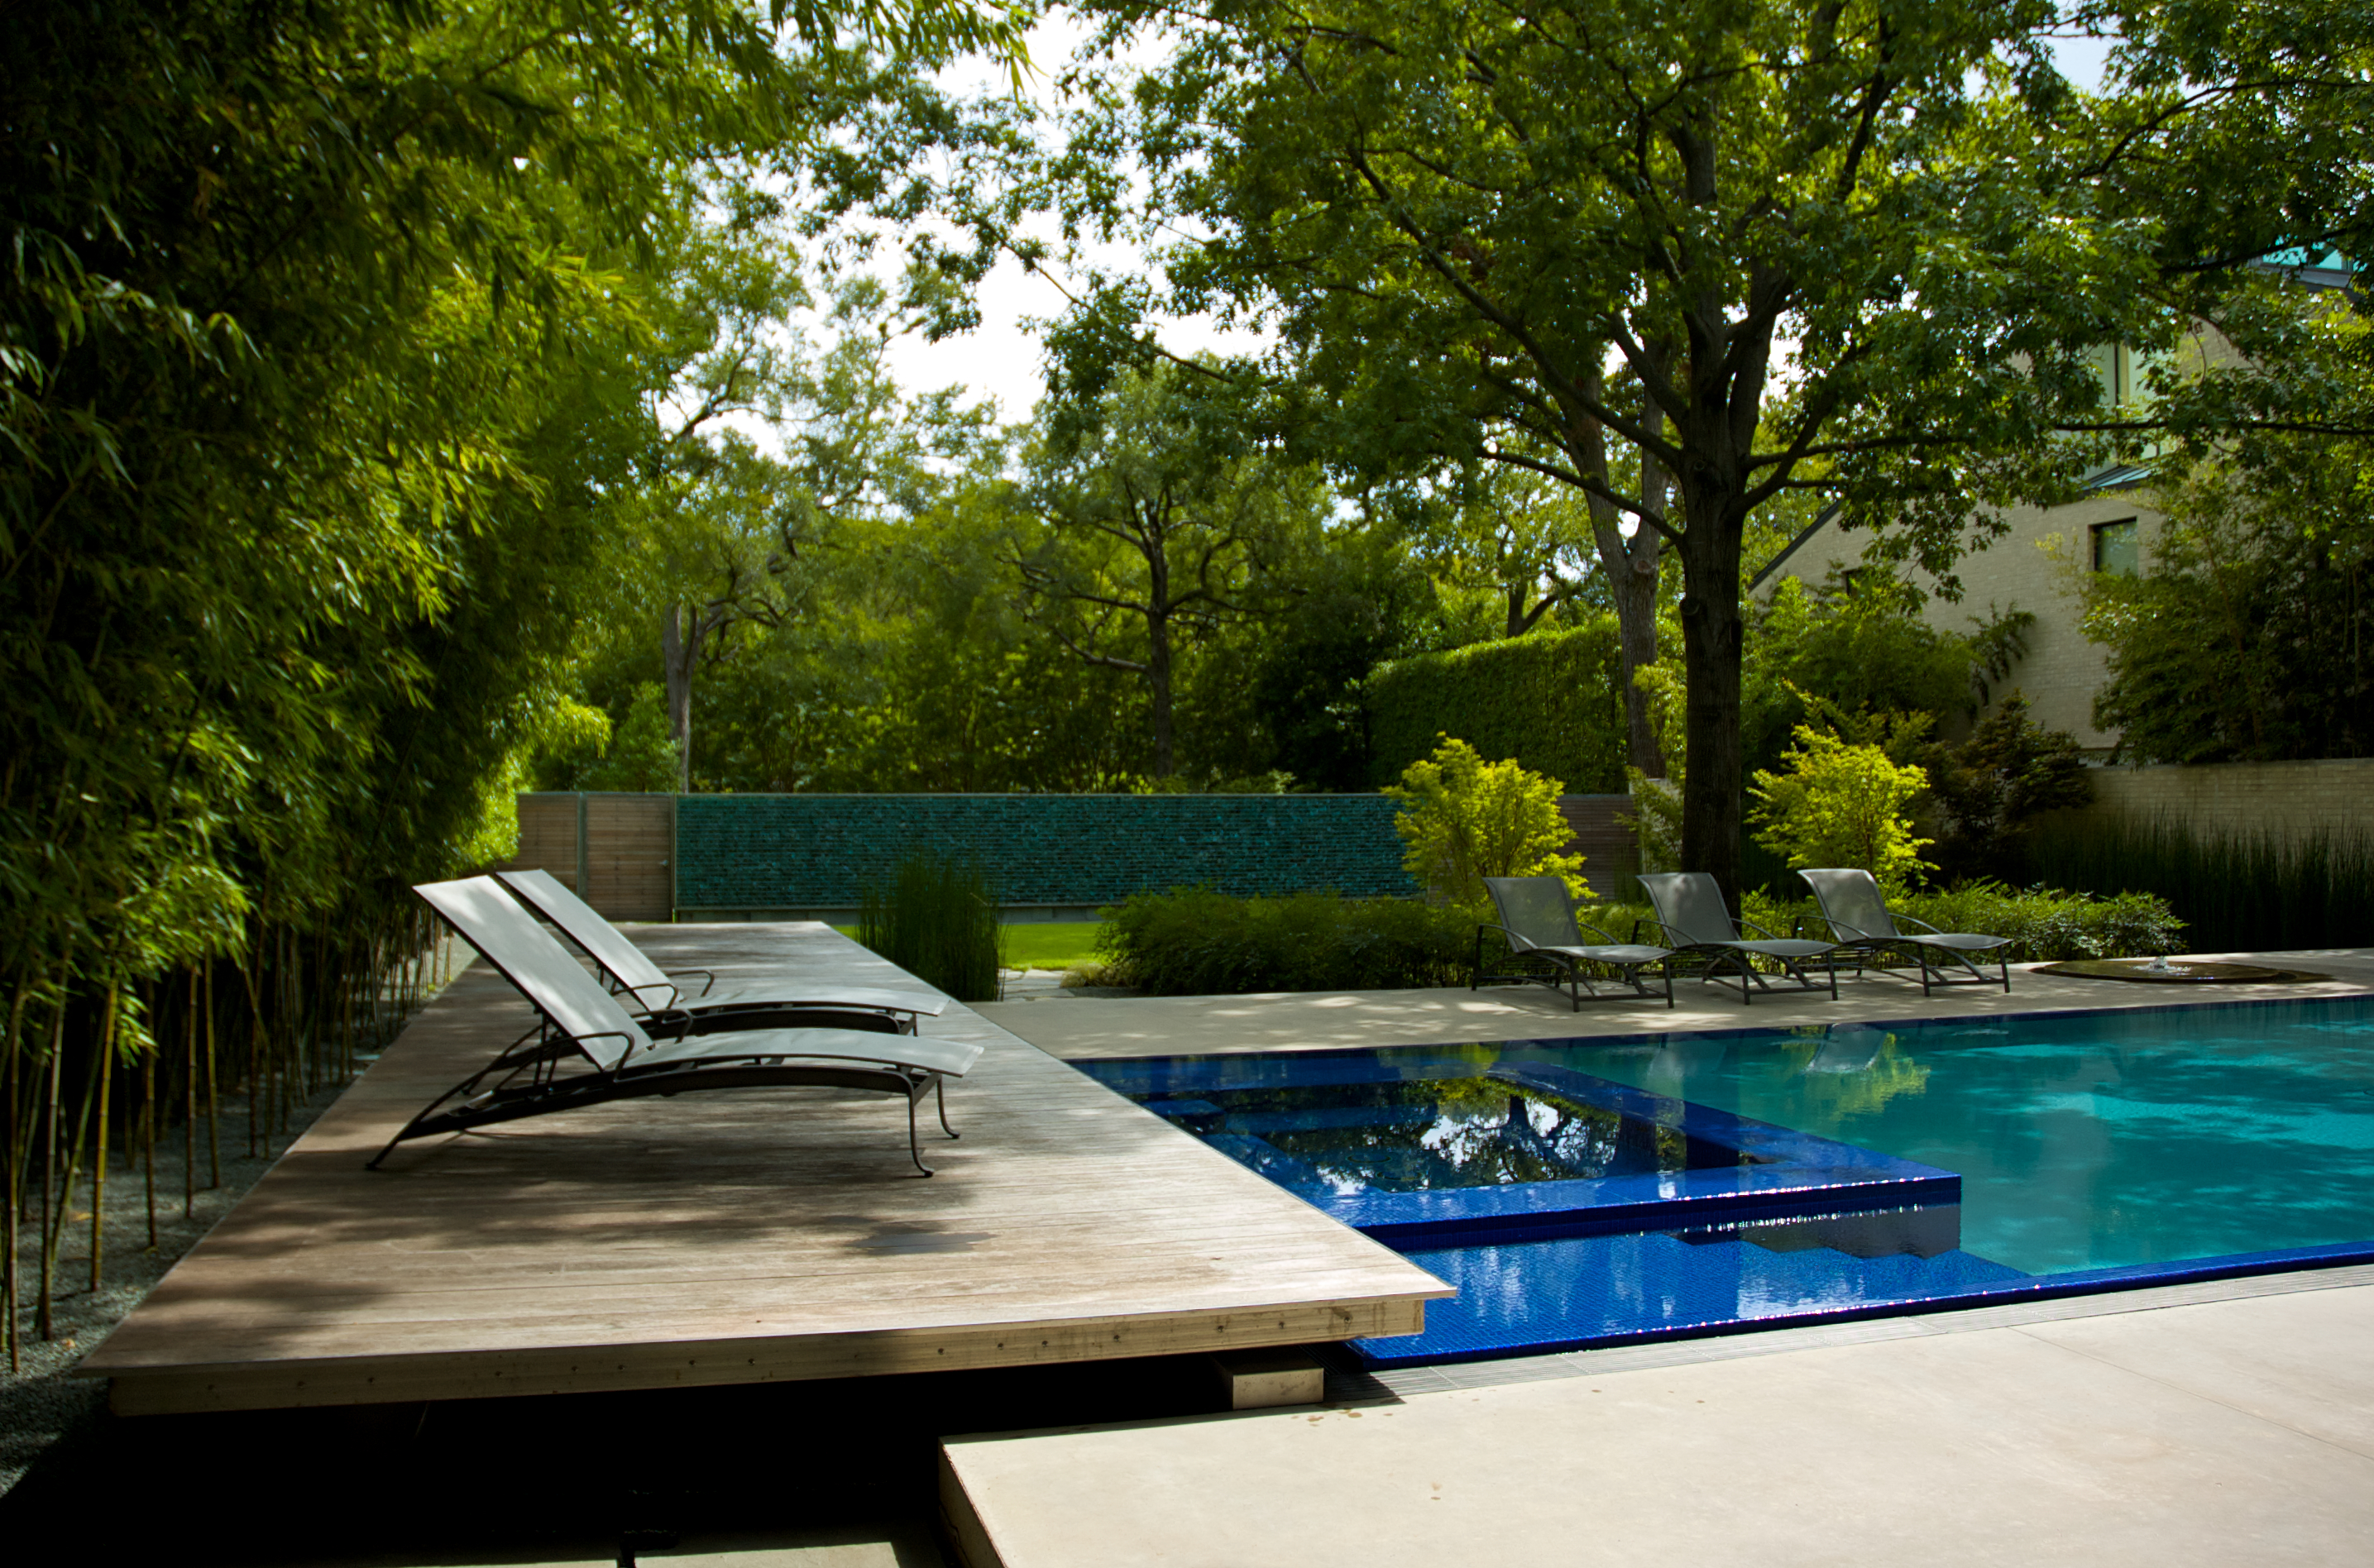 Asla 2010 professional awards the pool house for Home outdoor pool